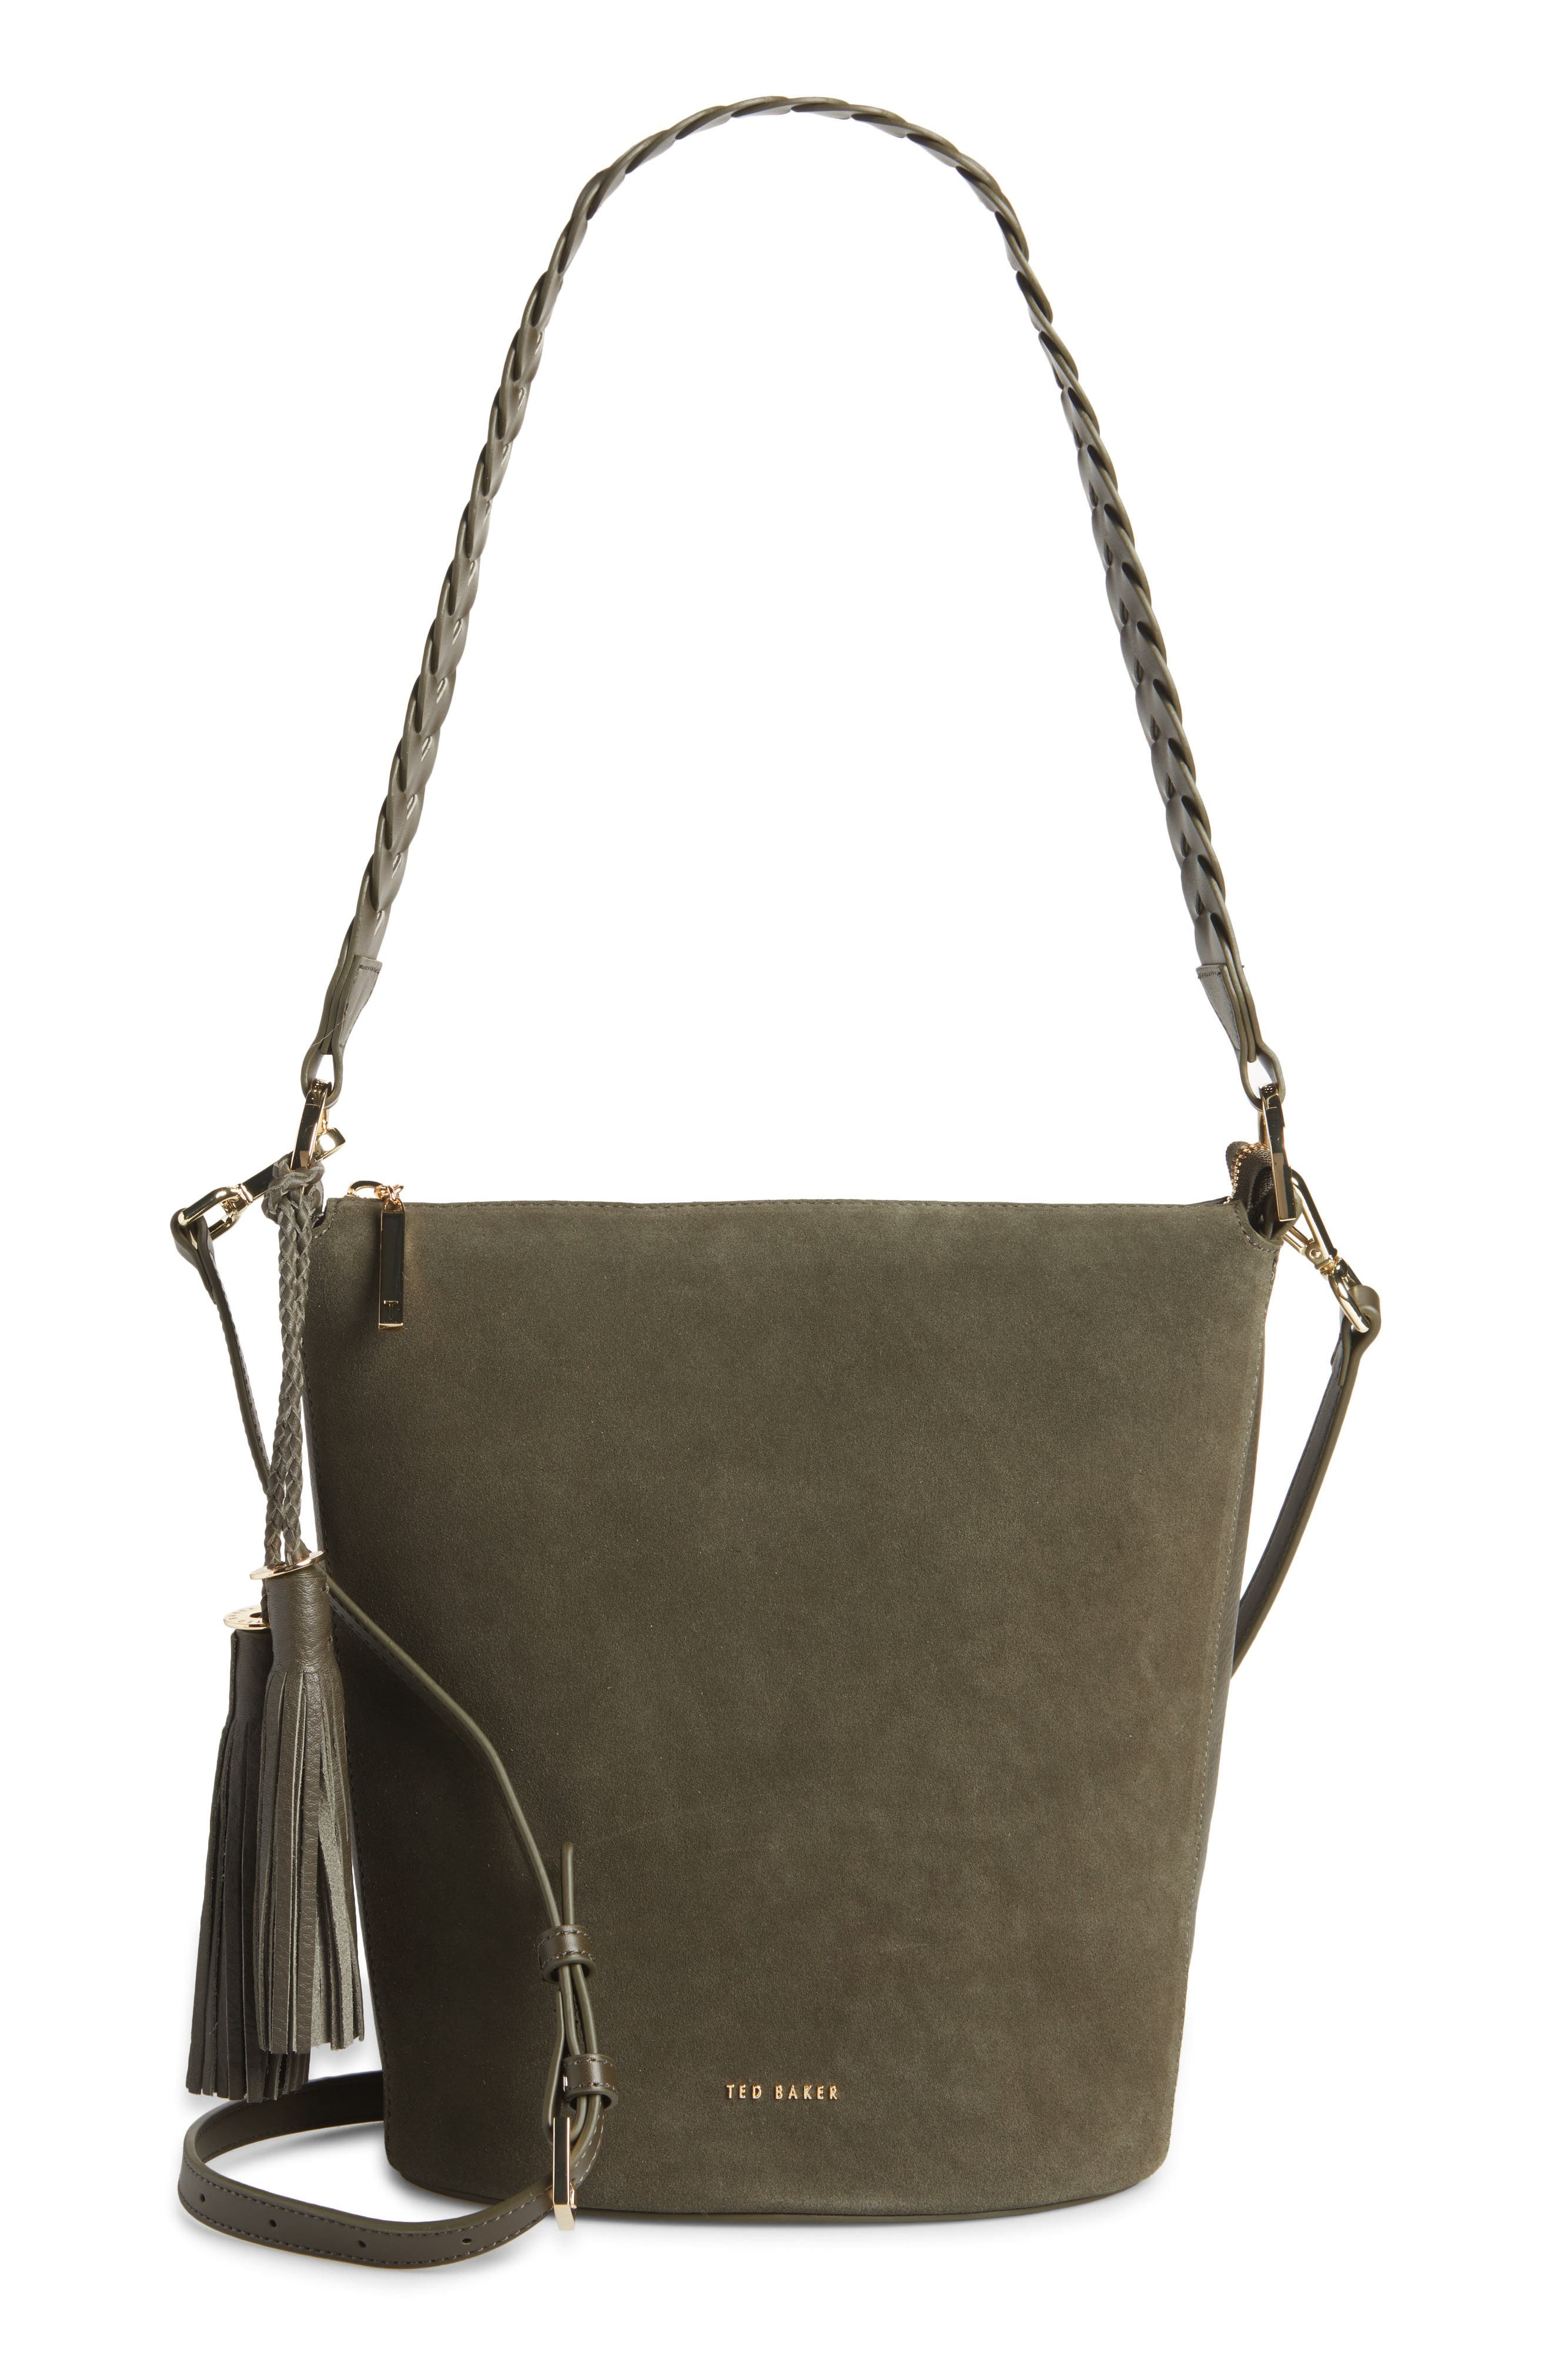 Minimalist and perfect for everyday wear, this bucket bag is outfitted with a pretty braided shoulder strap and tassel detailing. Style Name: Ted Baker London Rojin Leather Bucket Bag. Style Number: 6086681. Available in stores.